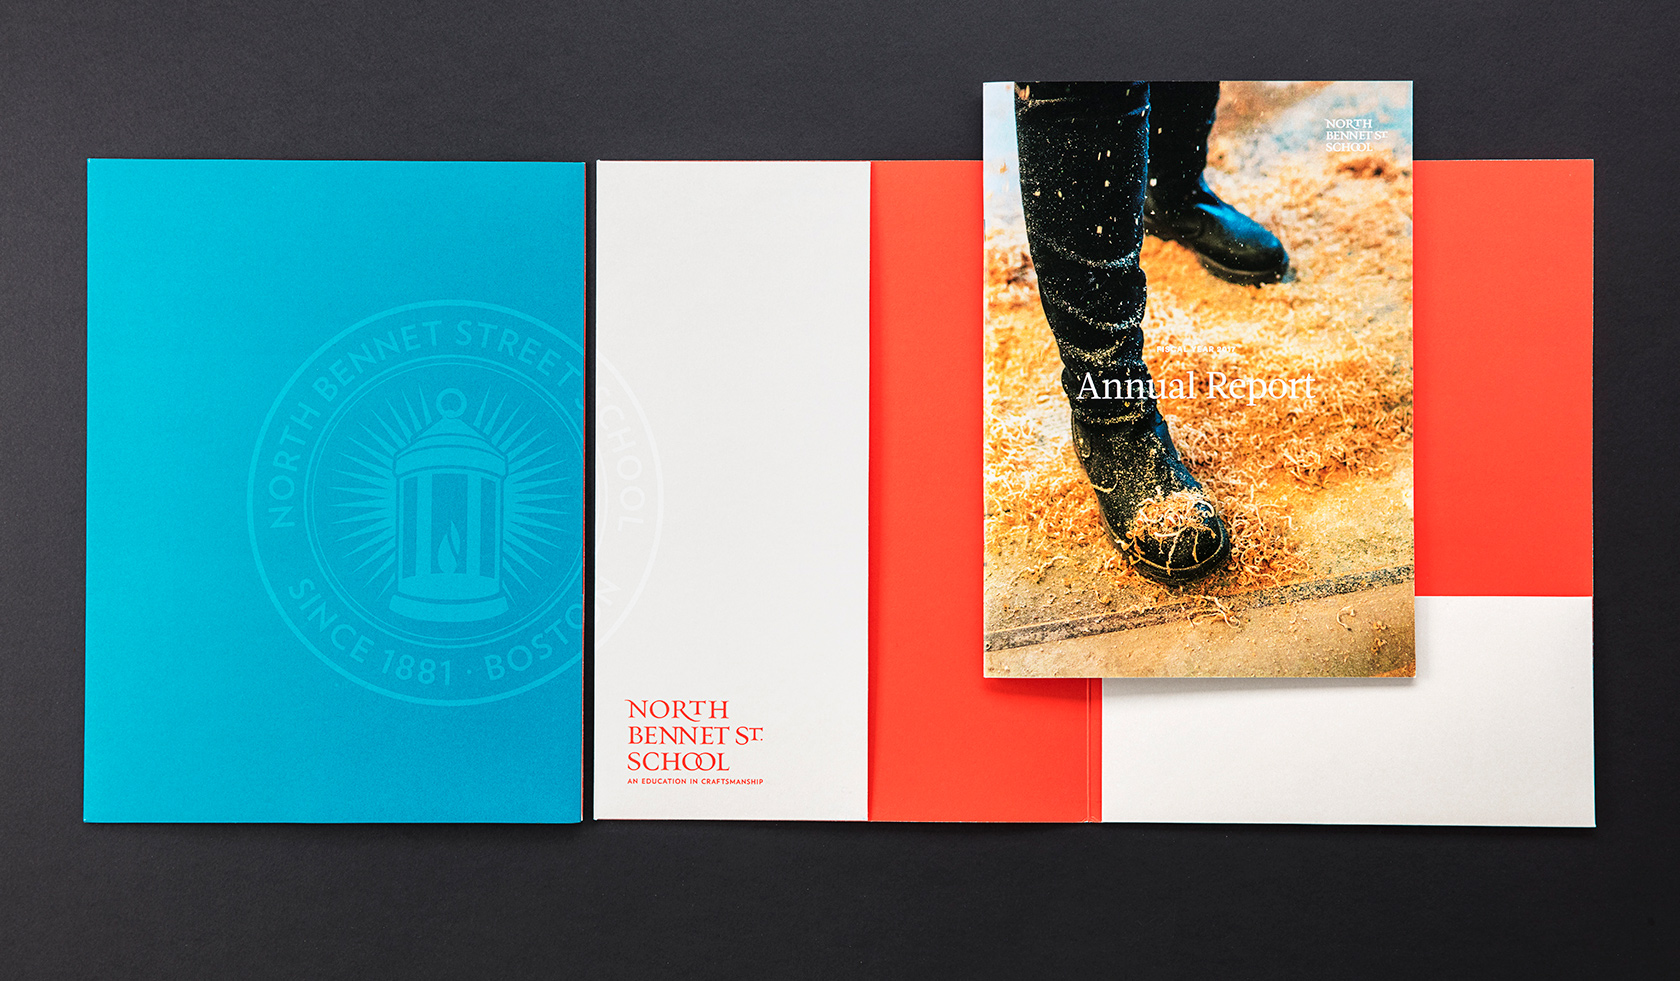 North Bennet Street School Brand Design